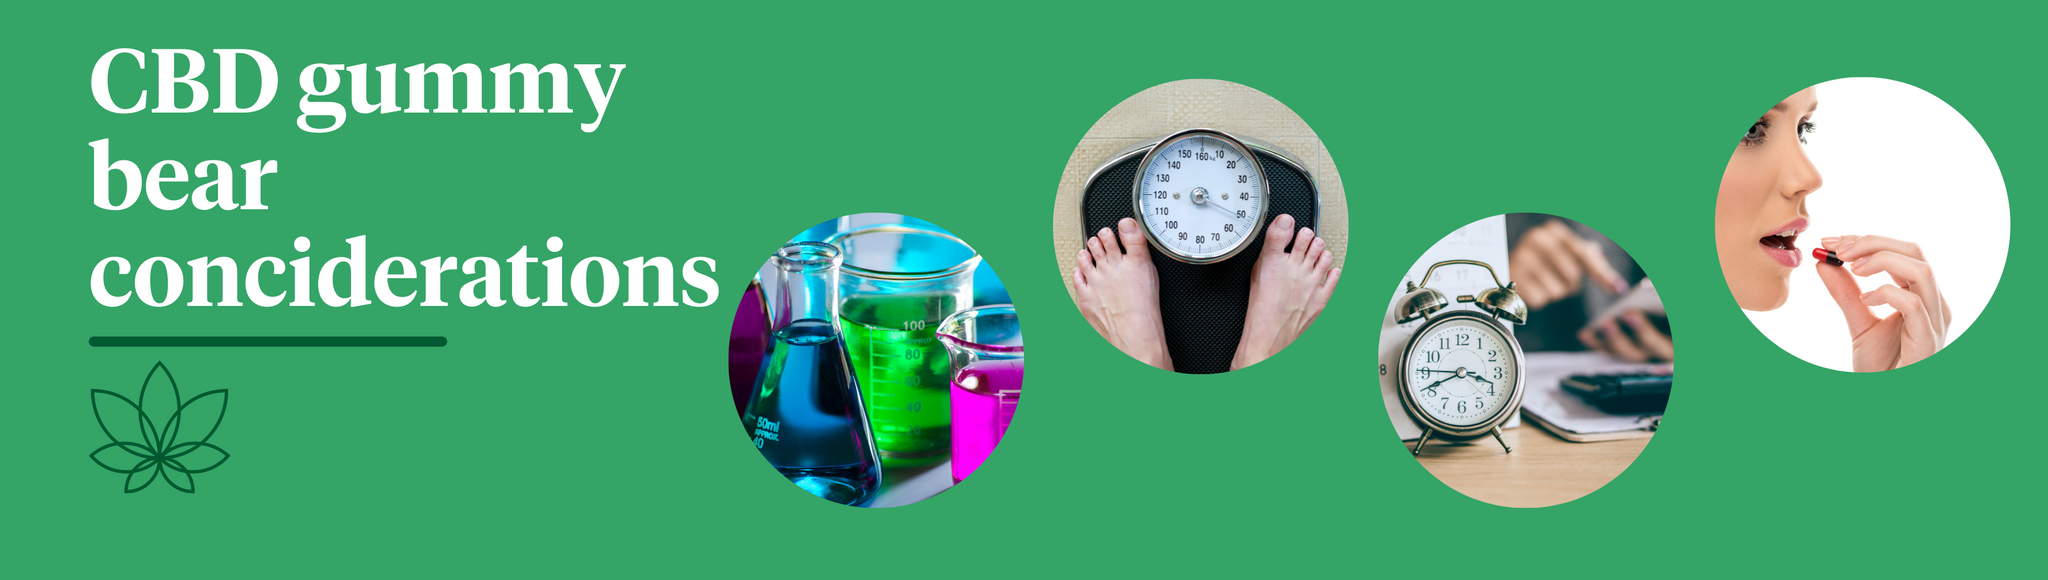 """A green background with the Supreme CBD logo below white text saying """"CBD Gummy Bear Considerations"""". Along with four images of chemicals, weight scales, a clock and a woman taking a pill."""